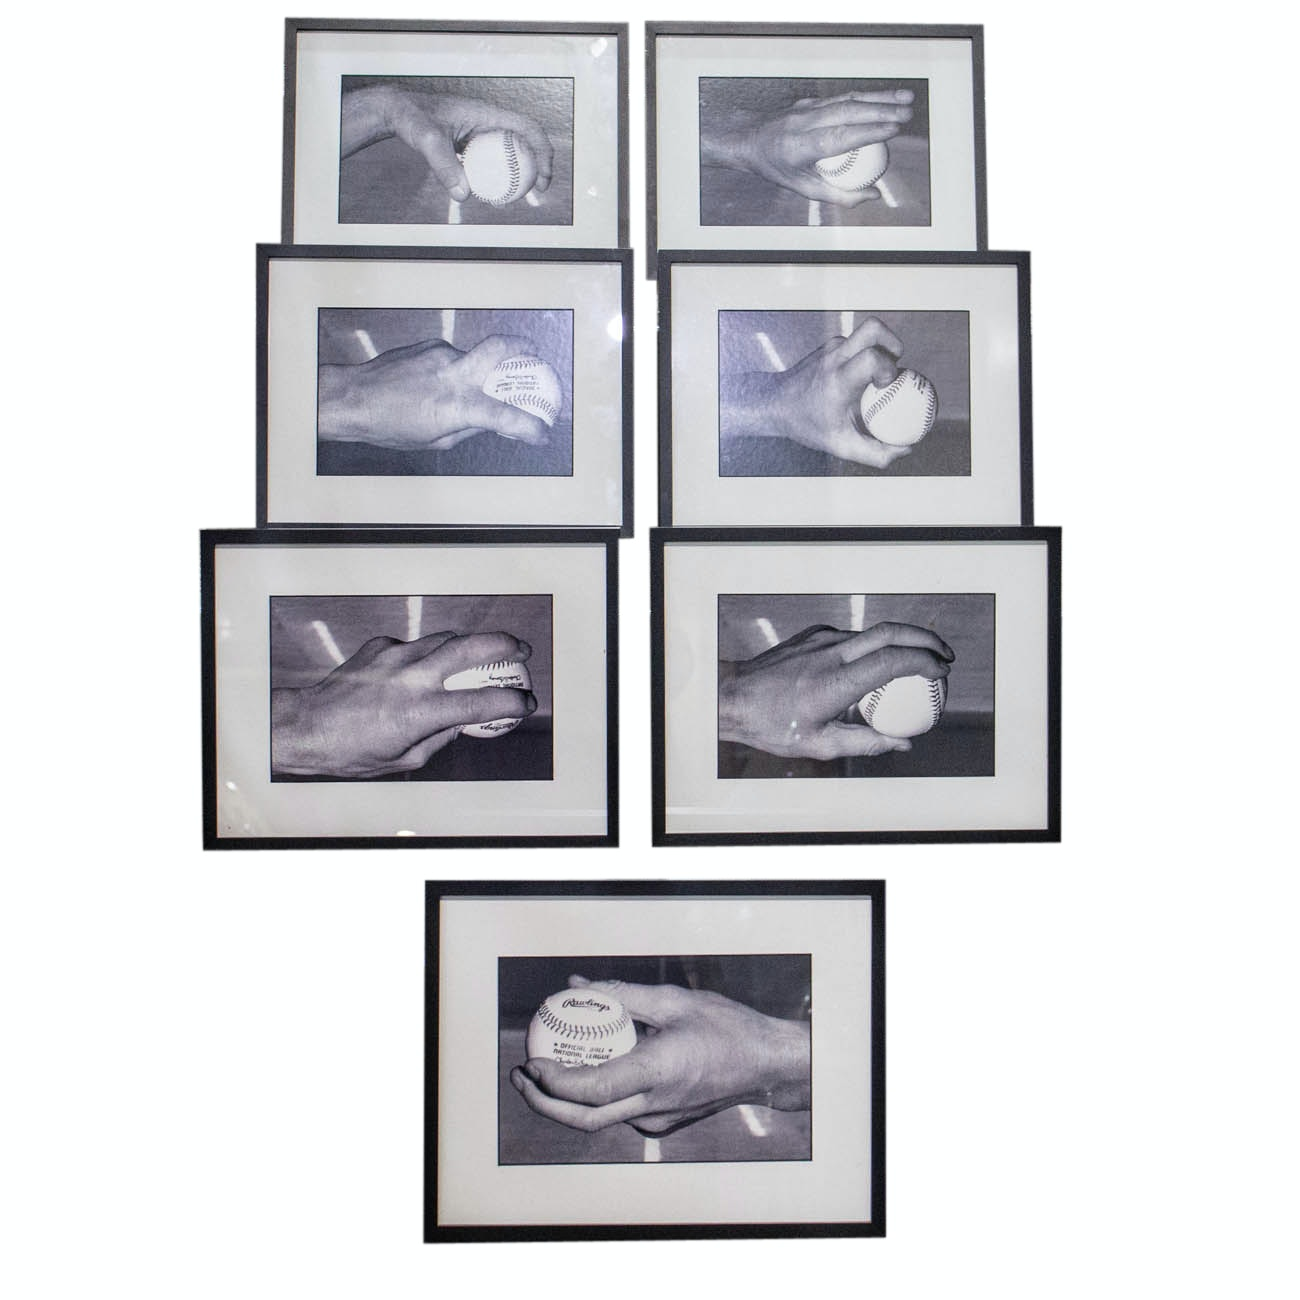 Seven Framed Photographs Of Pitching Grips From The Cincinnati Reds COA